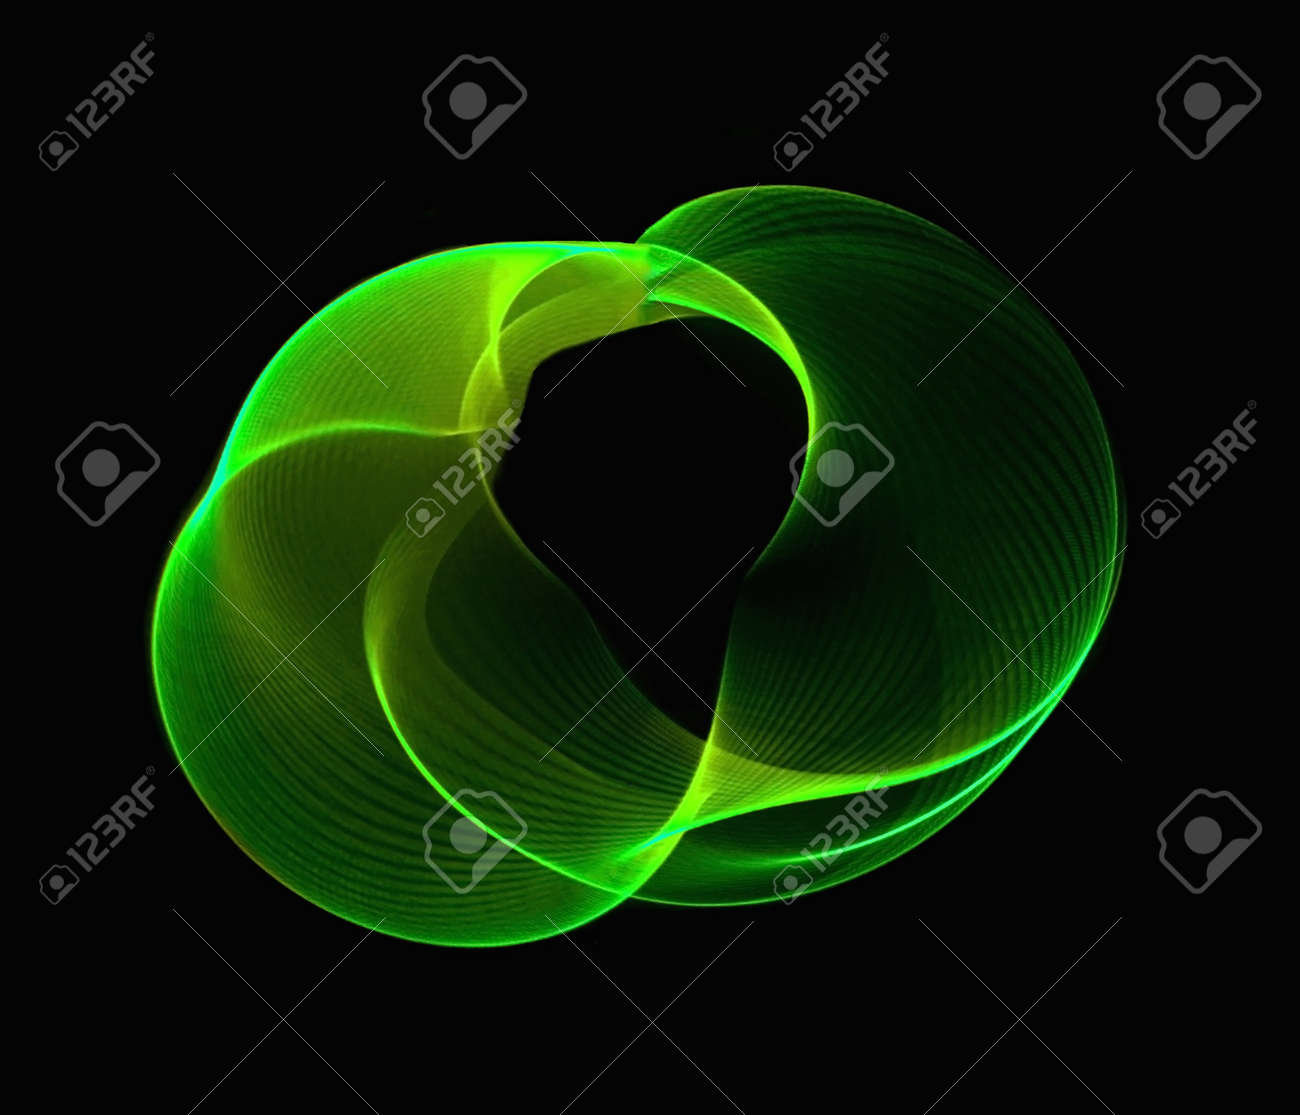 Green internet light wave showing fully connected circle Stock Photo - 4316694